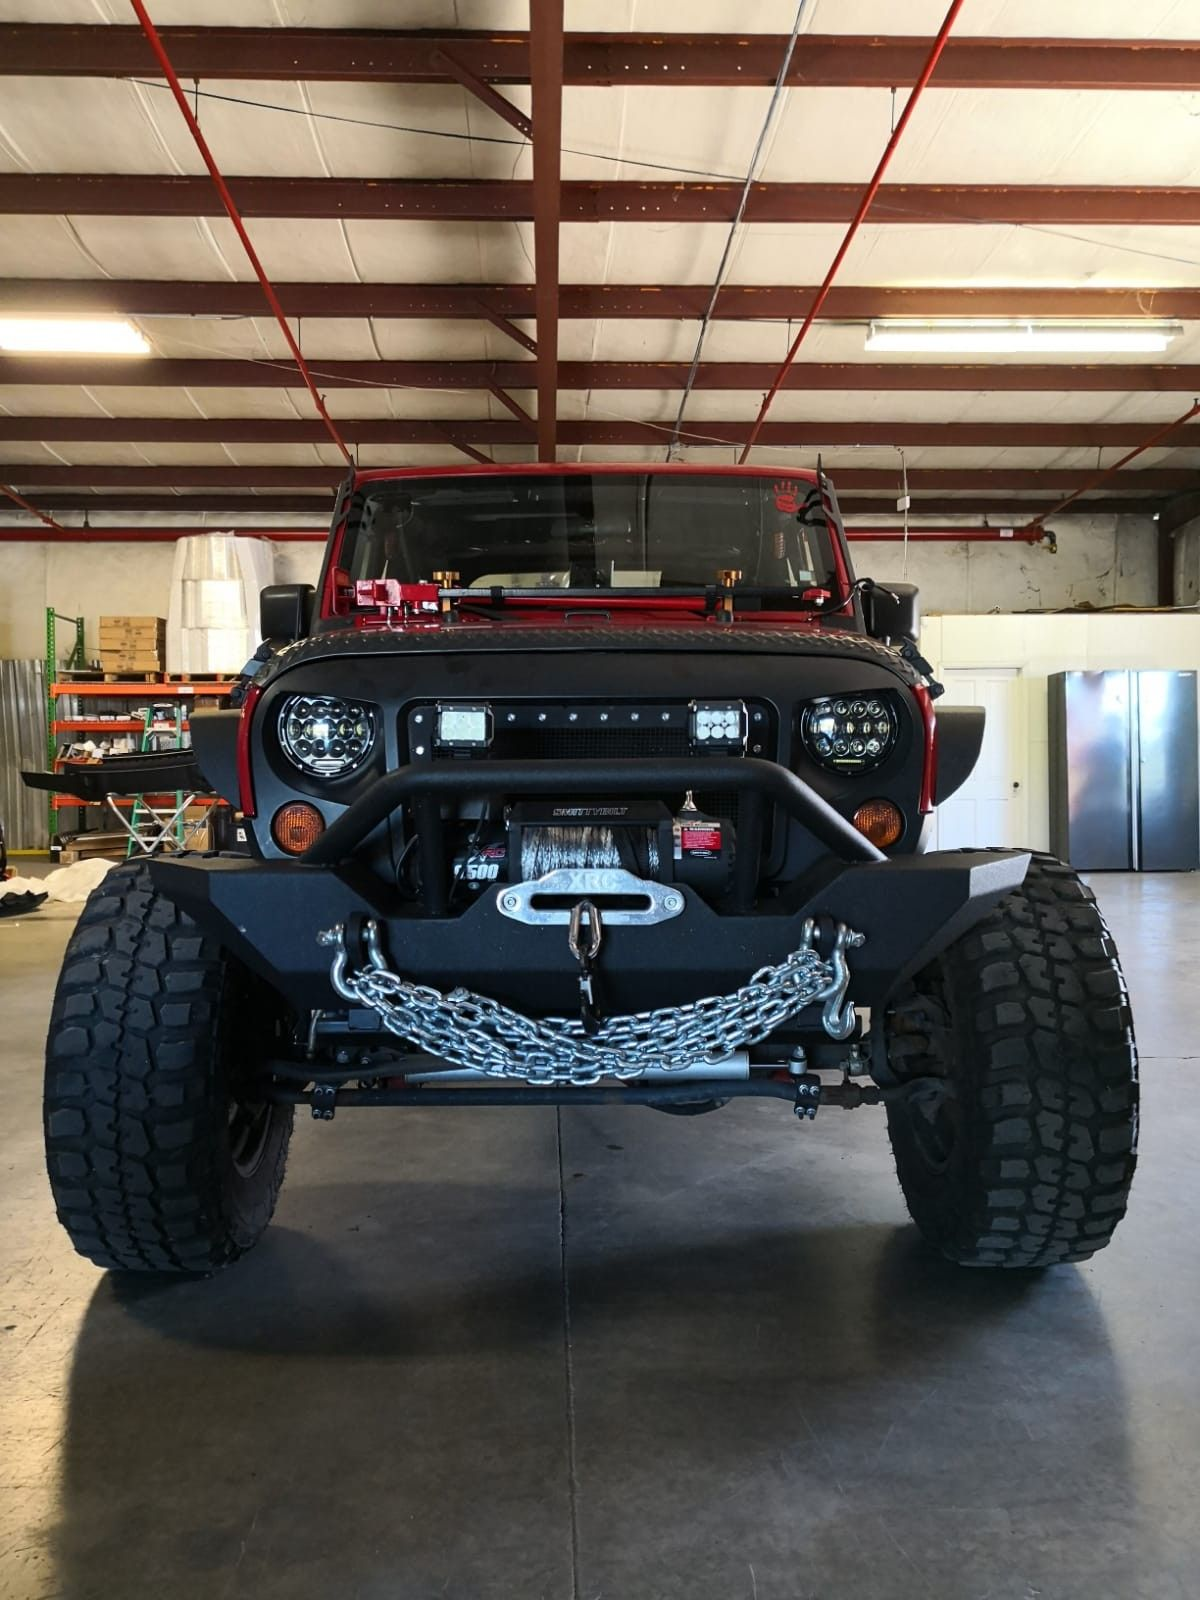 Buy Parts For Your Jeep Wrangler Click And See Jeep Wrangler Headlights Jeep Wrangler Jeep